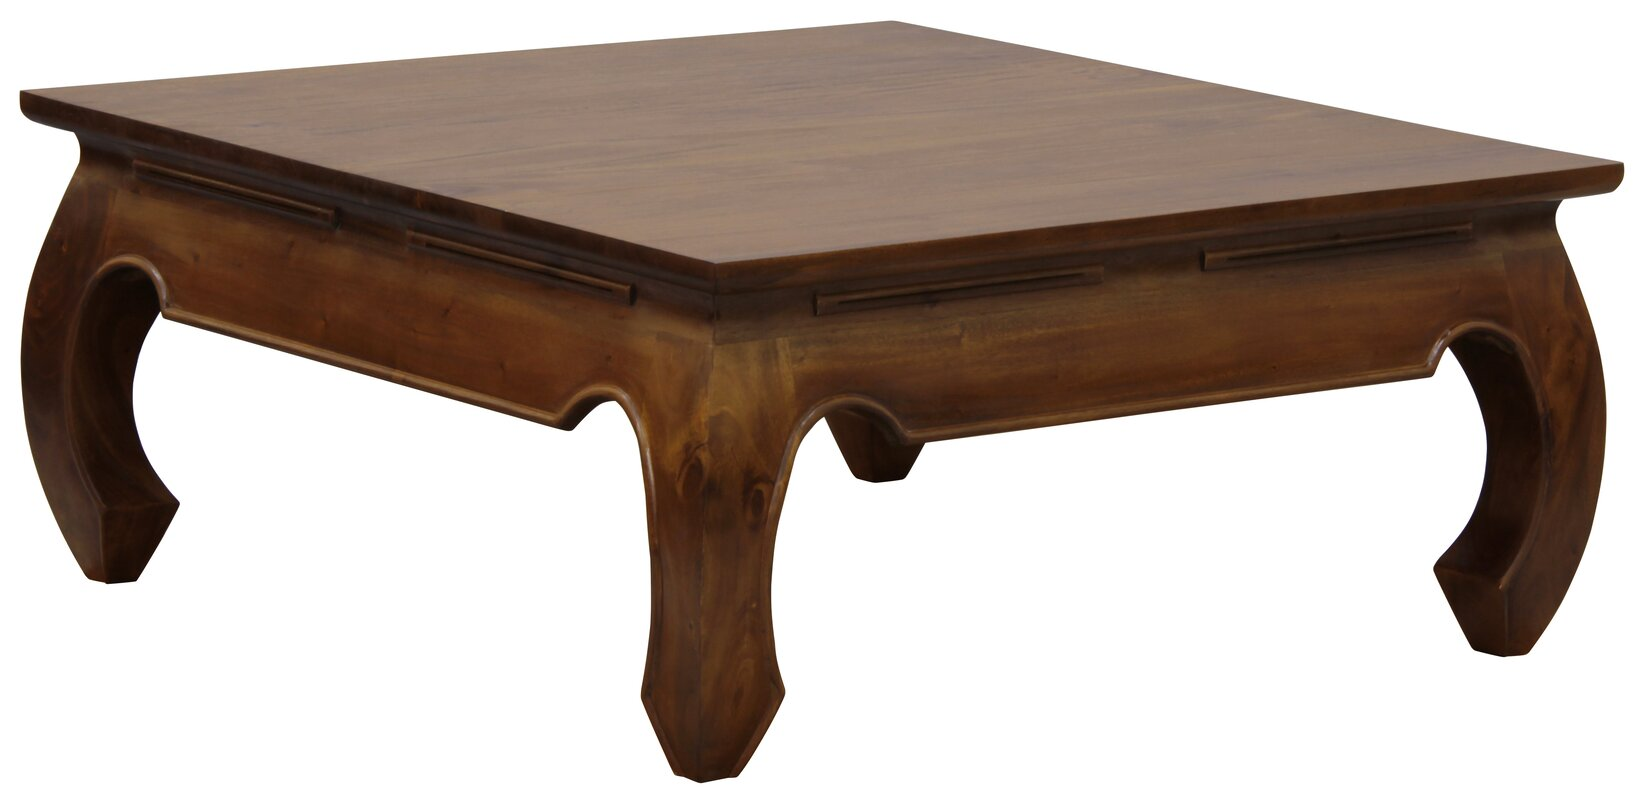 NES Furniture Fine Handcrafted Solid Mahogany Wood Opium Coffee